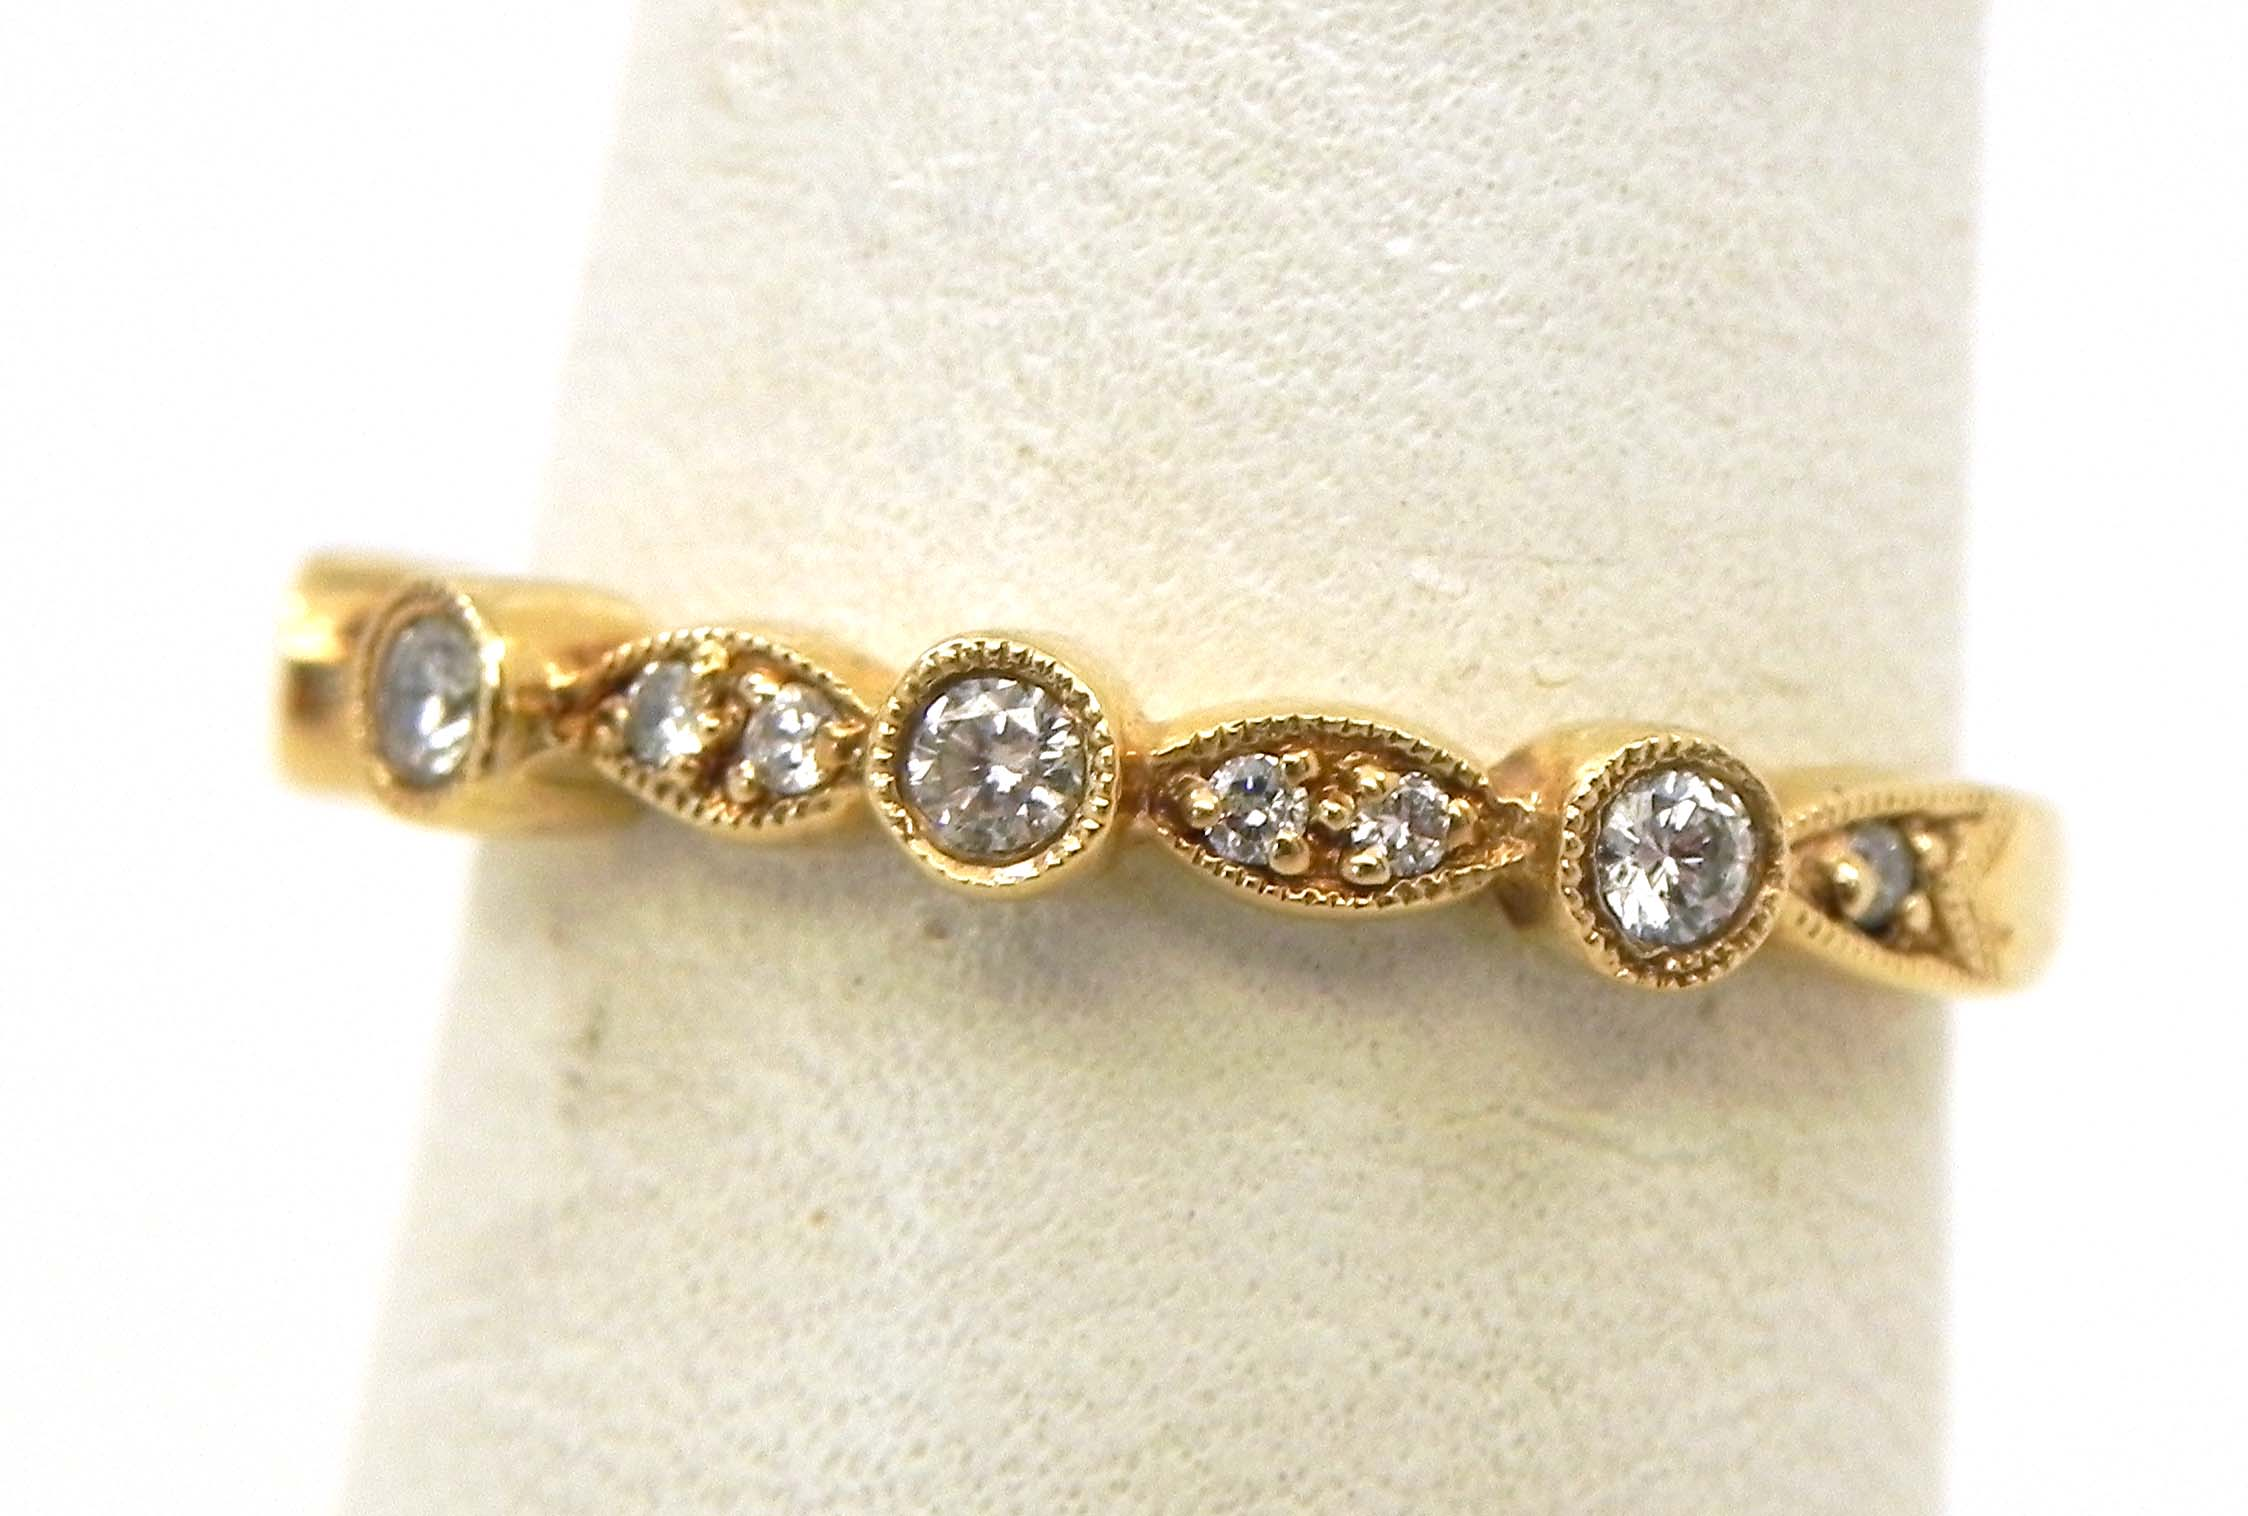 vintage channel diamond intended gold wedding rings bands popular for i in yellow band set